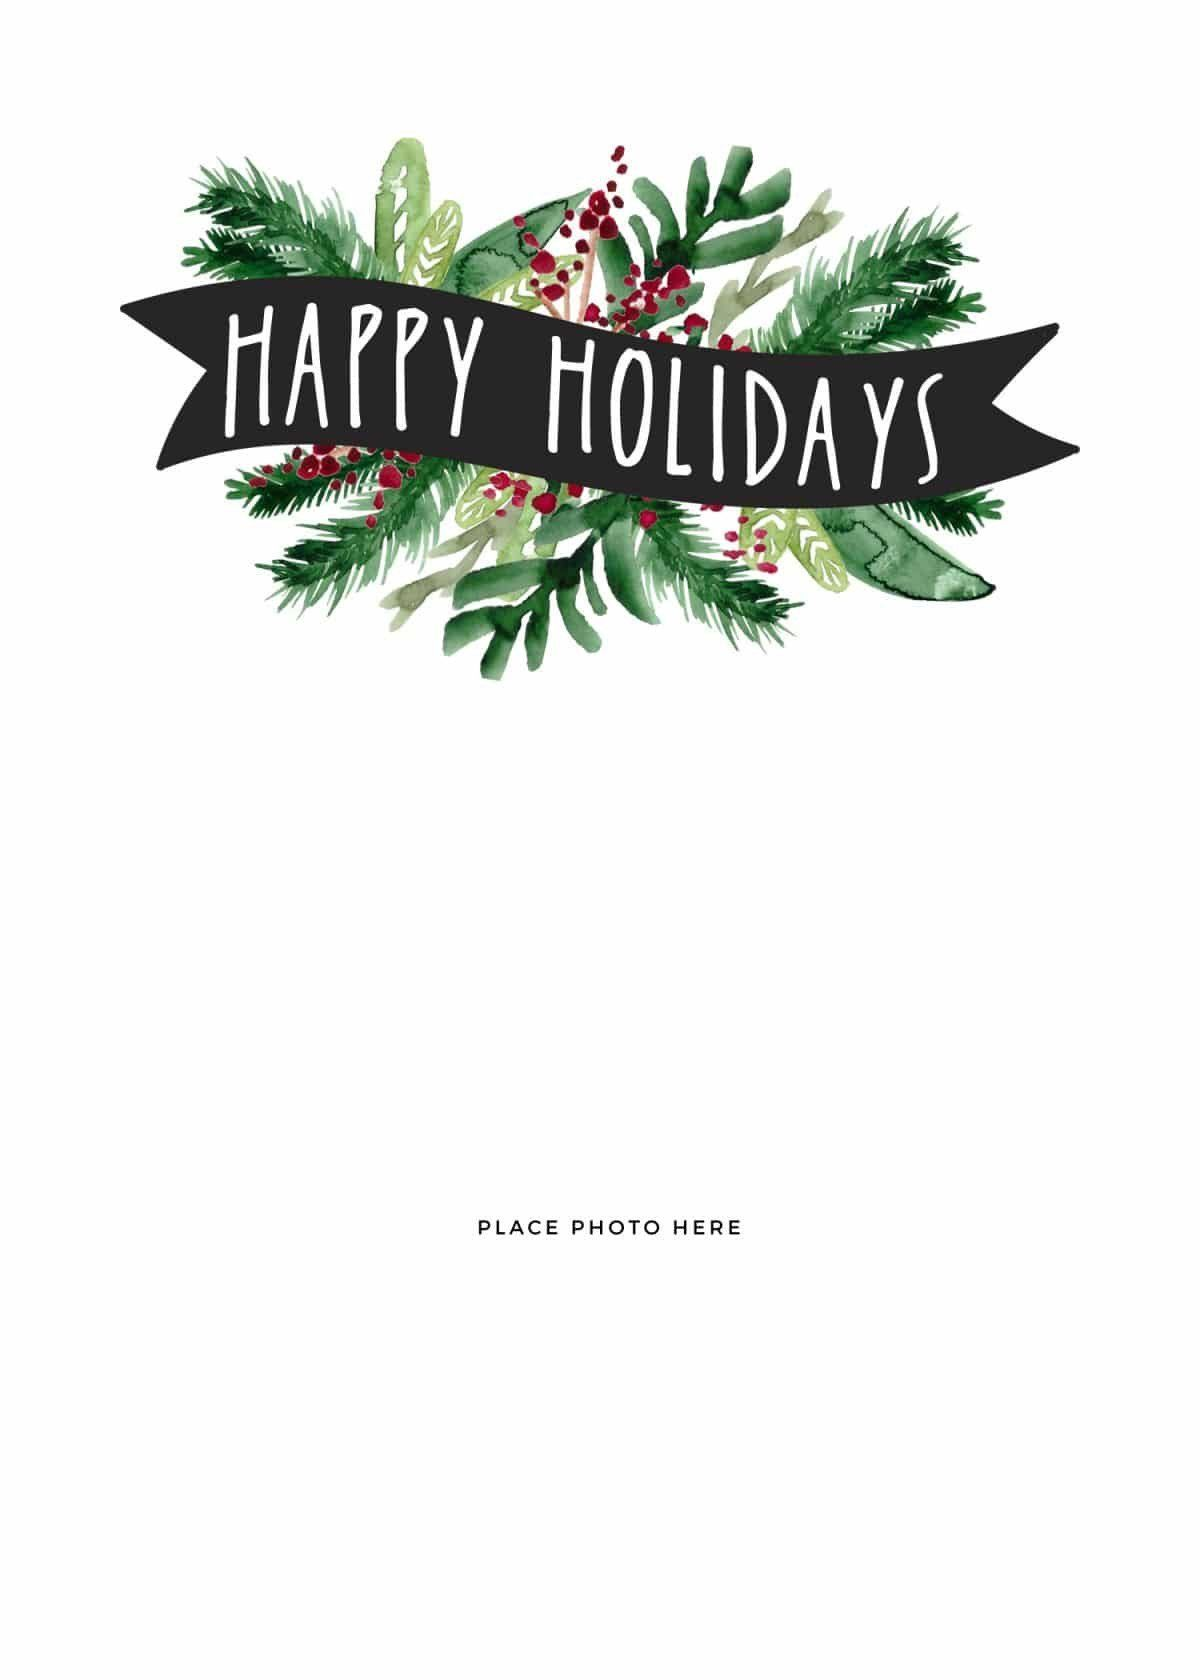 Digital Christmas Card Templates Awesome Christmas Card Outline Kab In 2020 Free Holiday Photo Card Templates Free Holiday Card Templates Christmas Card Templates Free